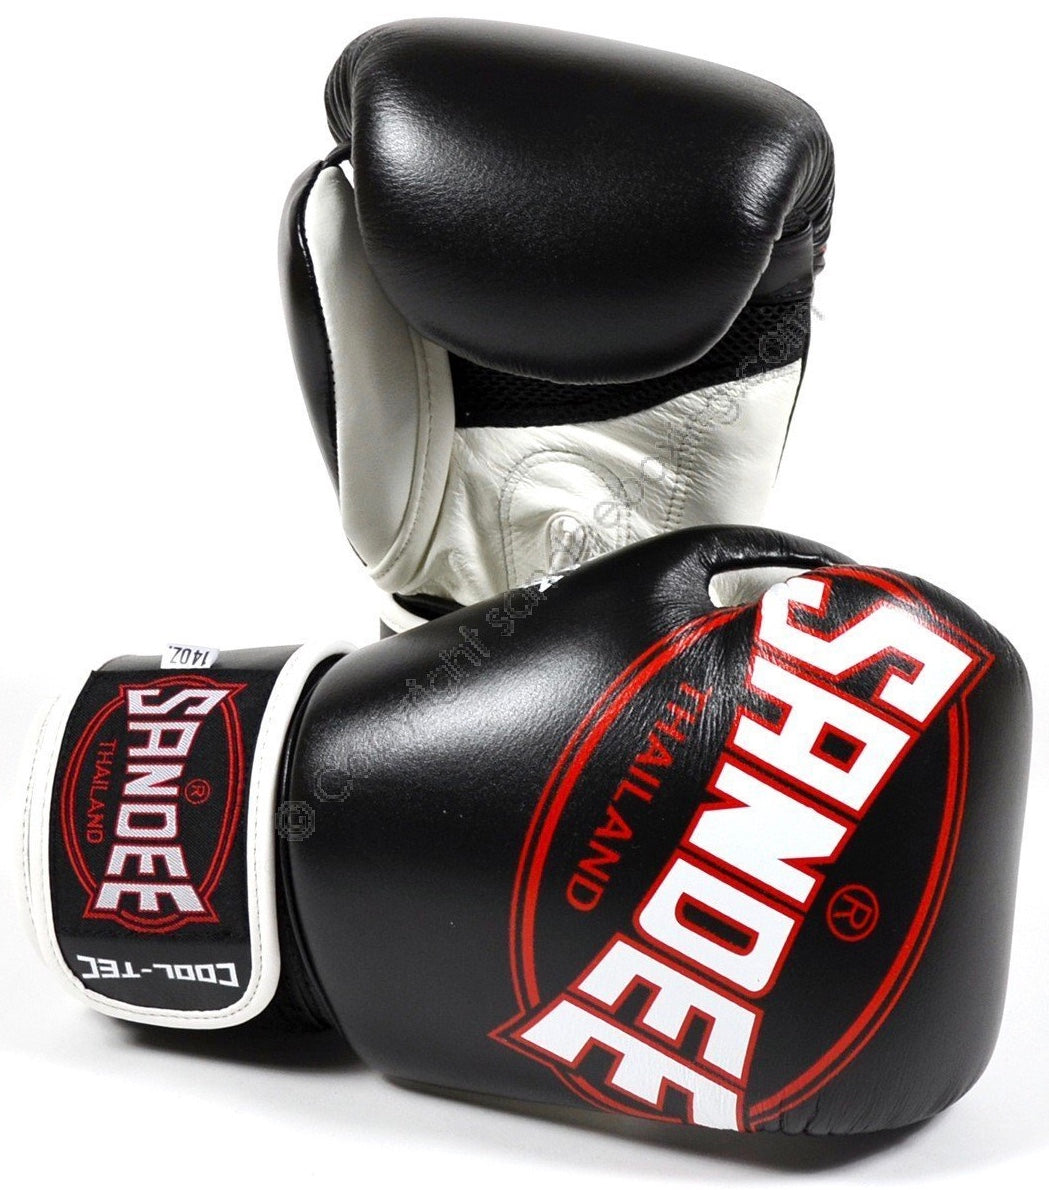 SANDEE-JUNIOR Cool-Tec Velcro Black, White & Red Synthetic Leather Boxing Glove